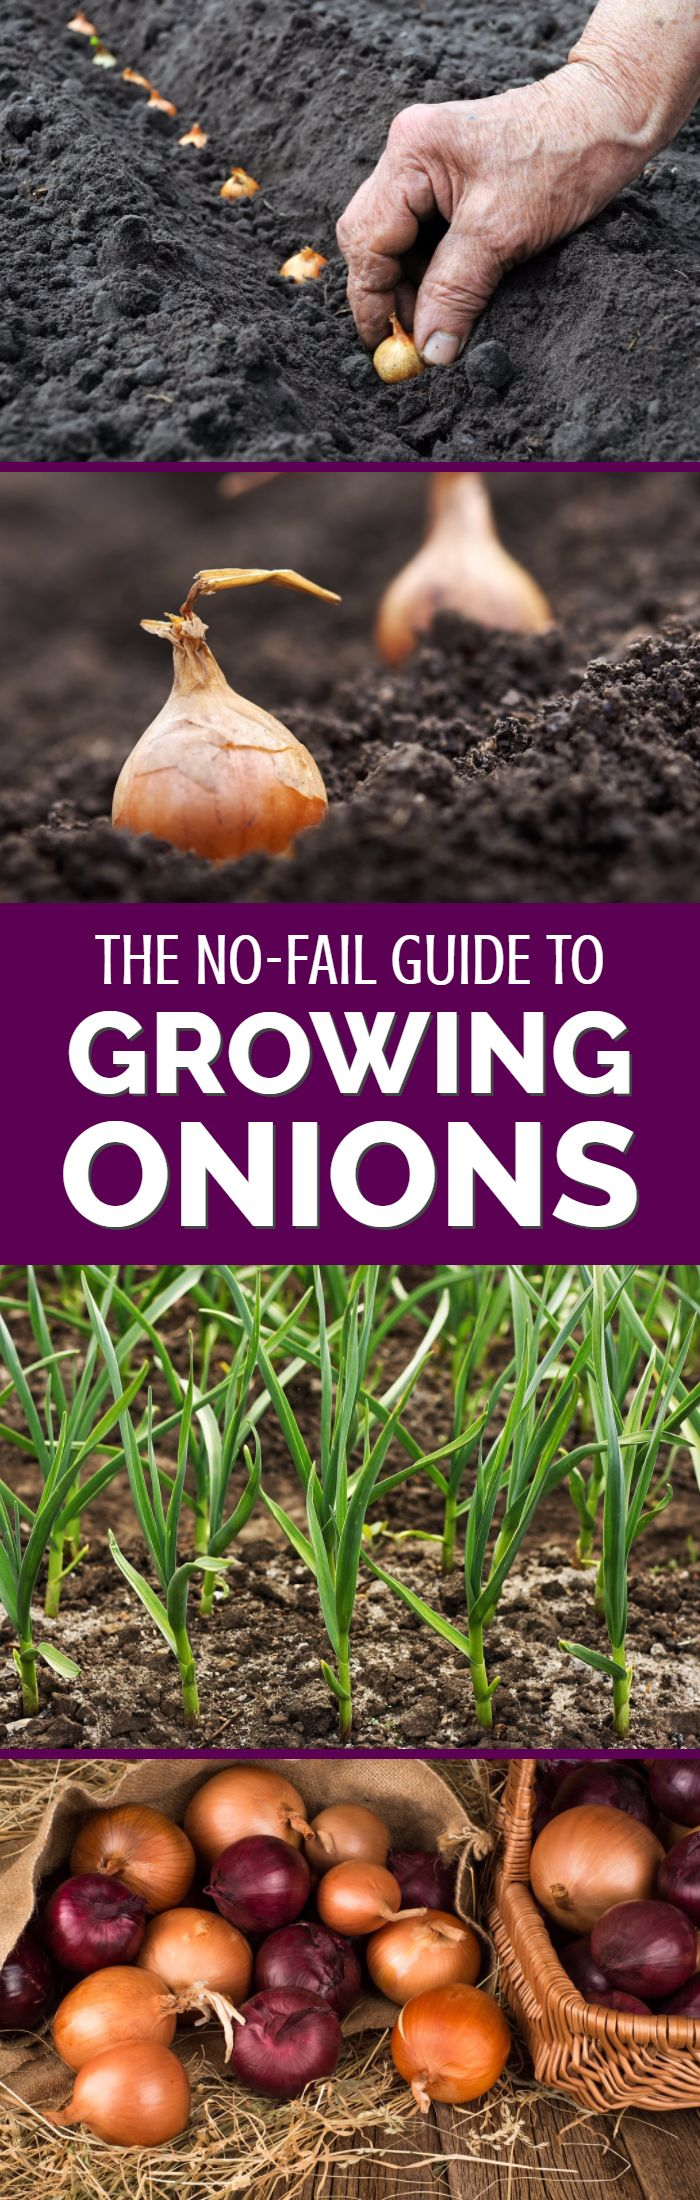 Growing onions from seed might sound like hard work, but it has a distinct number of benefits for gardeners and vegetable growers. Find out how to grow onions from seed in this detailed guide from an experienced British vegetable grower.